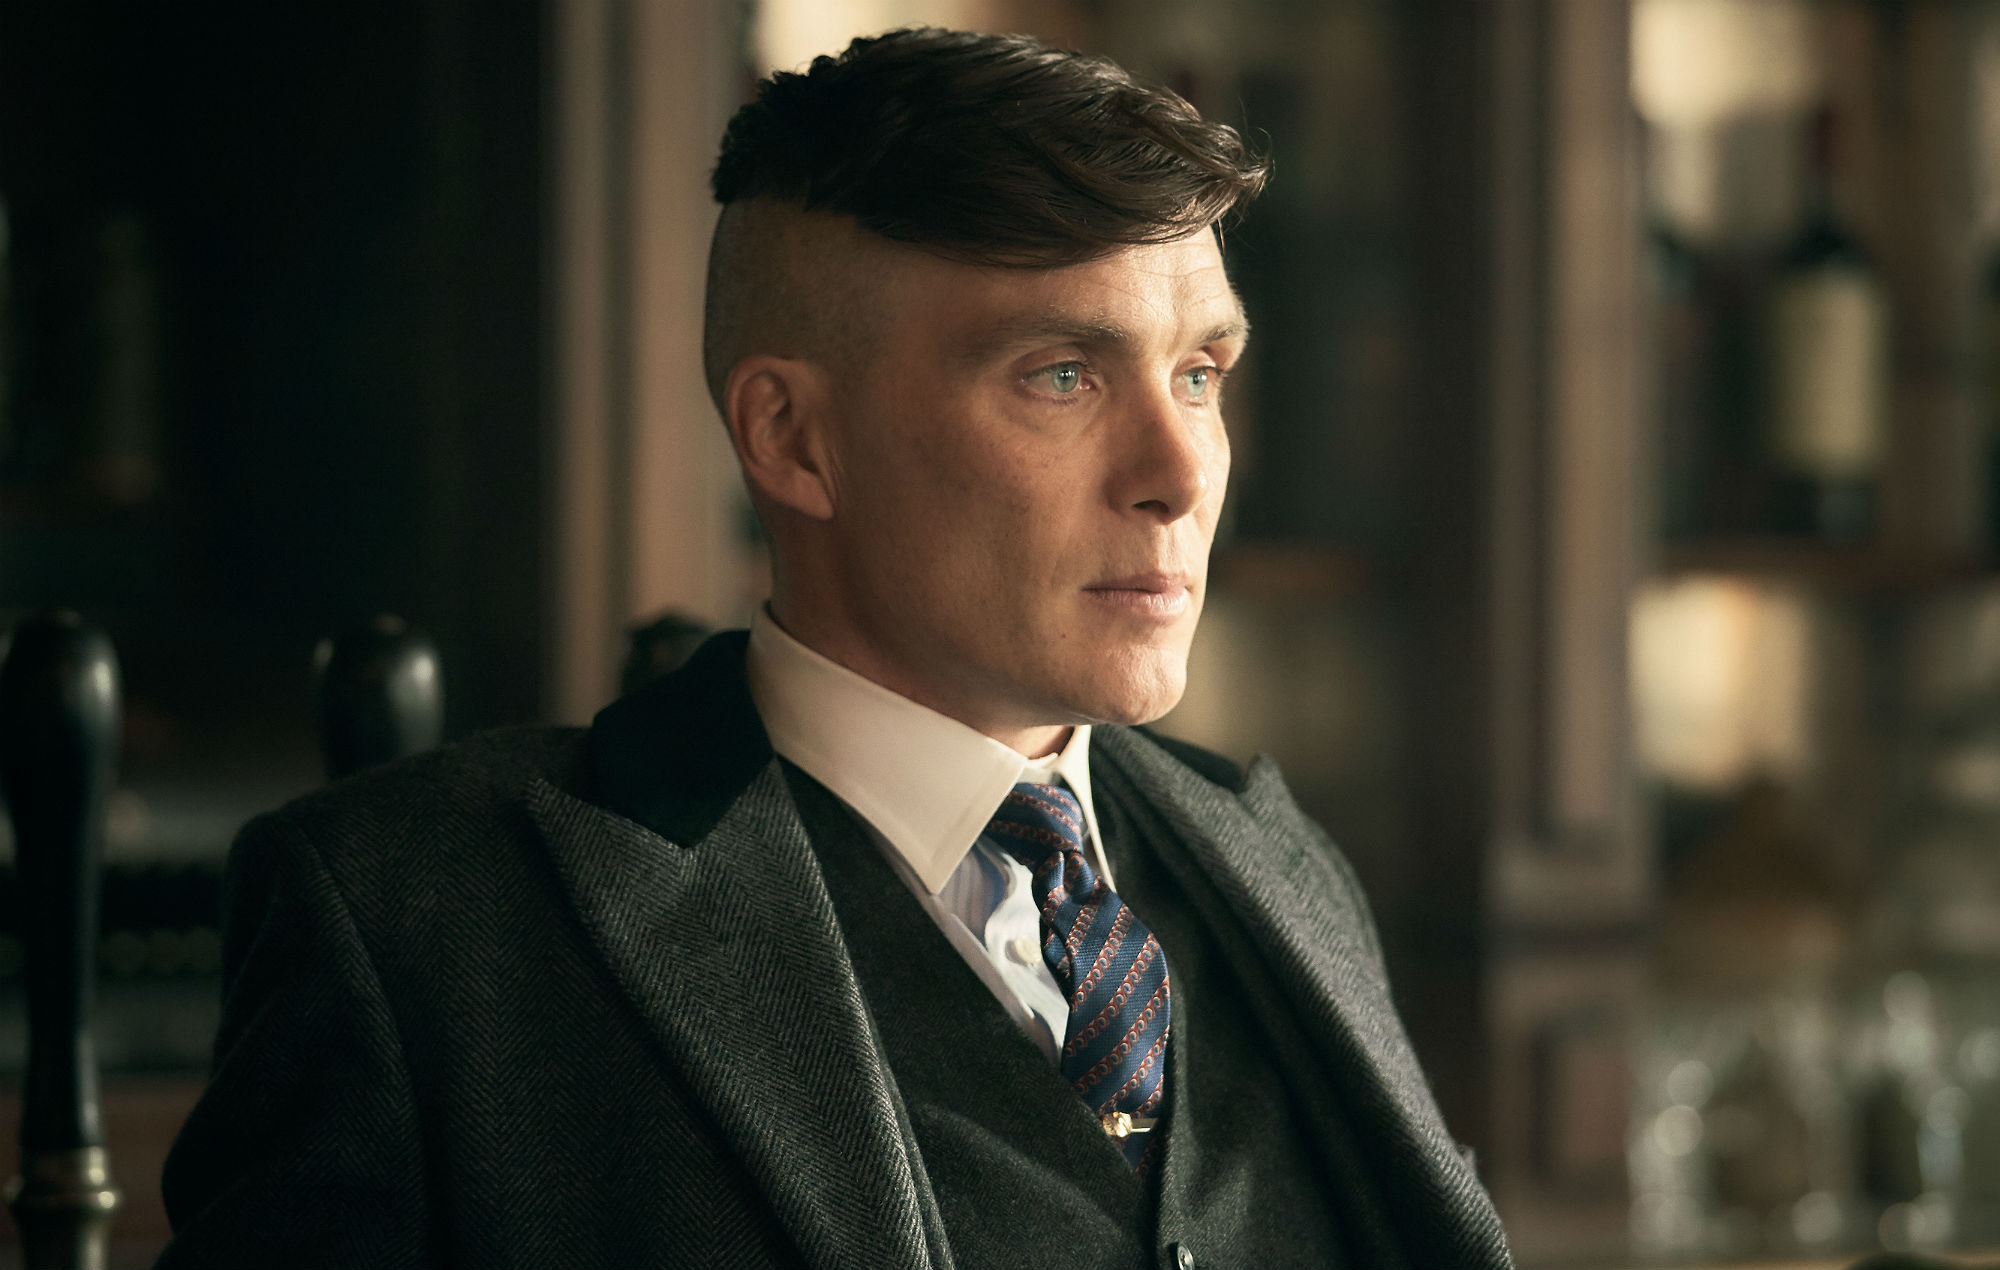 'Peaky Blinders' star Cillian Murphy responds to James Bond speculation